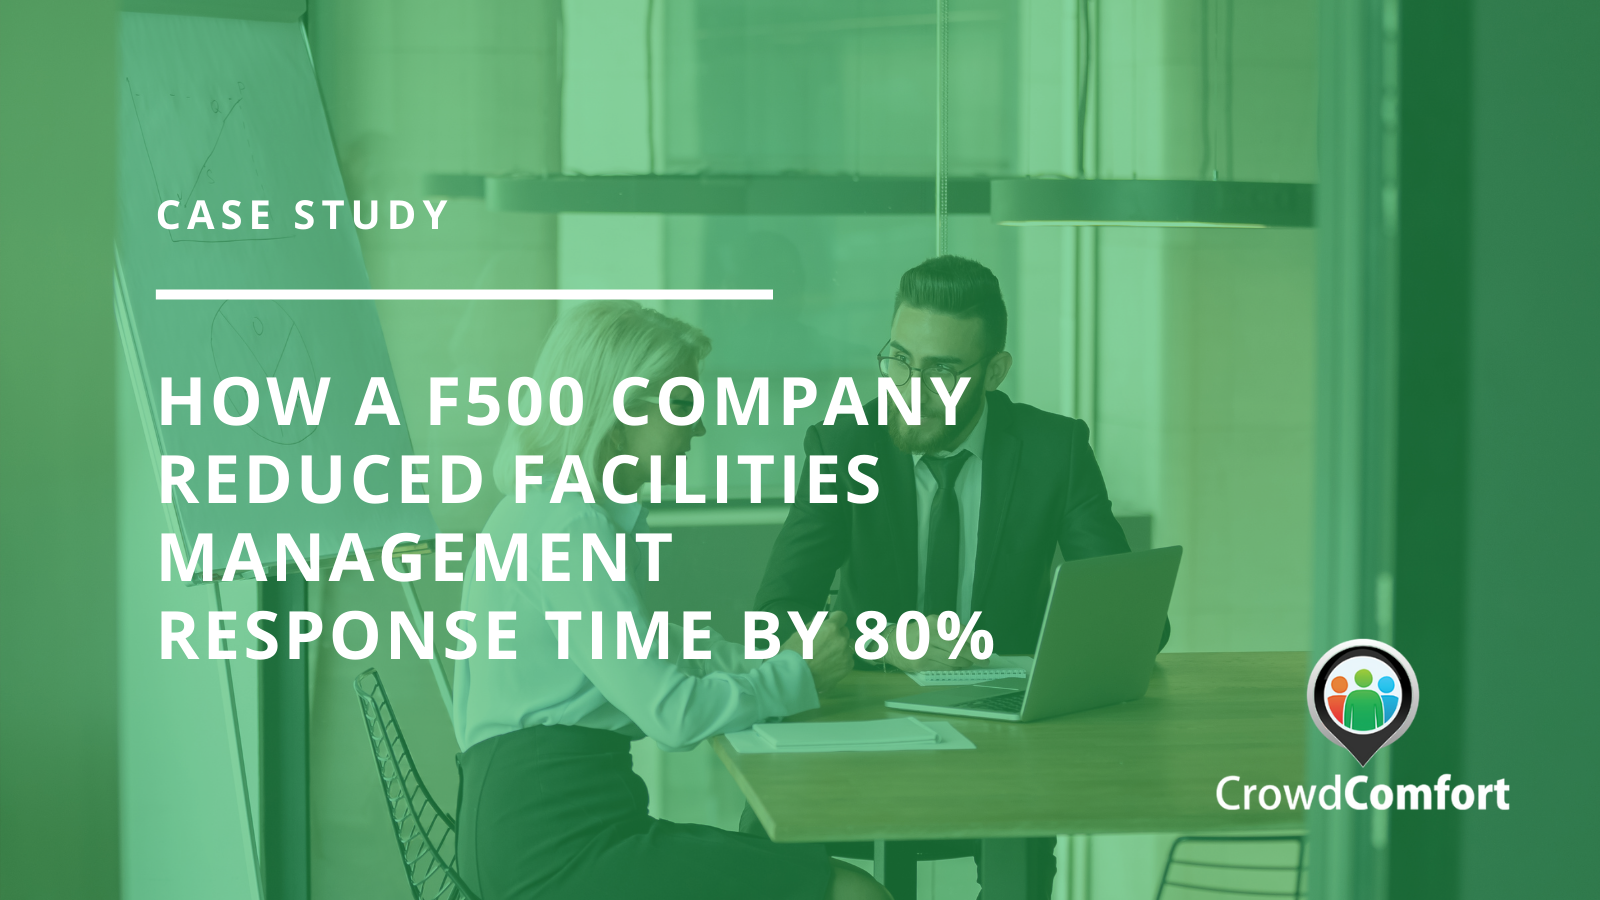 How a F500 Company Reduced Response Time by 80%